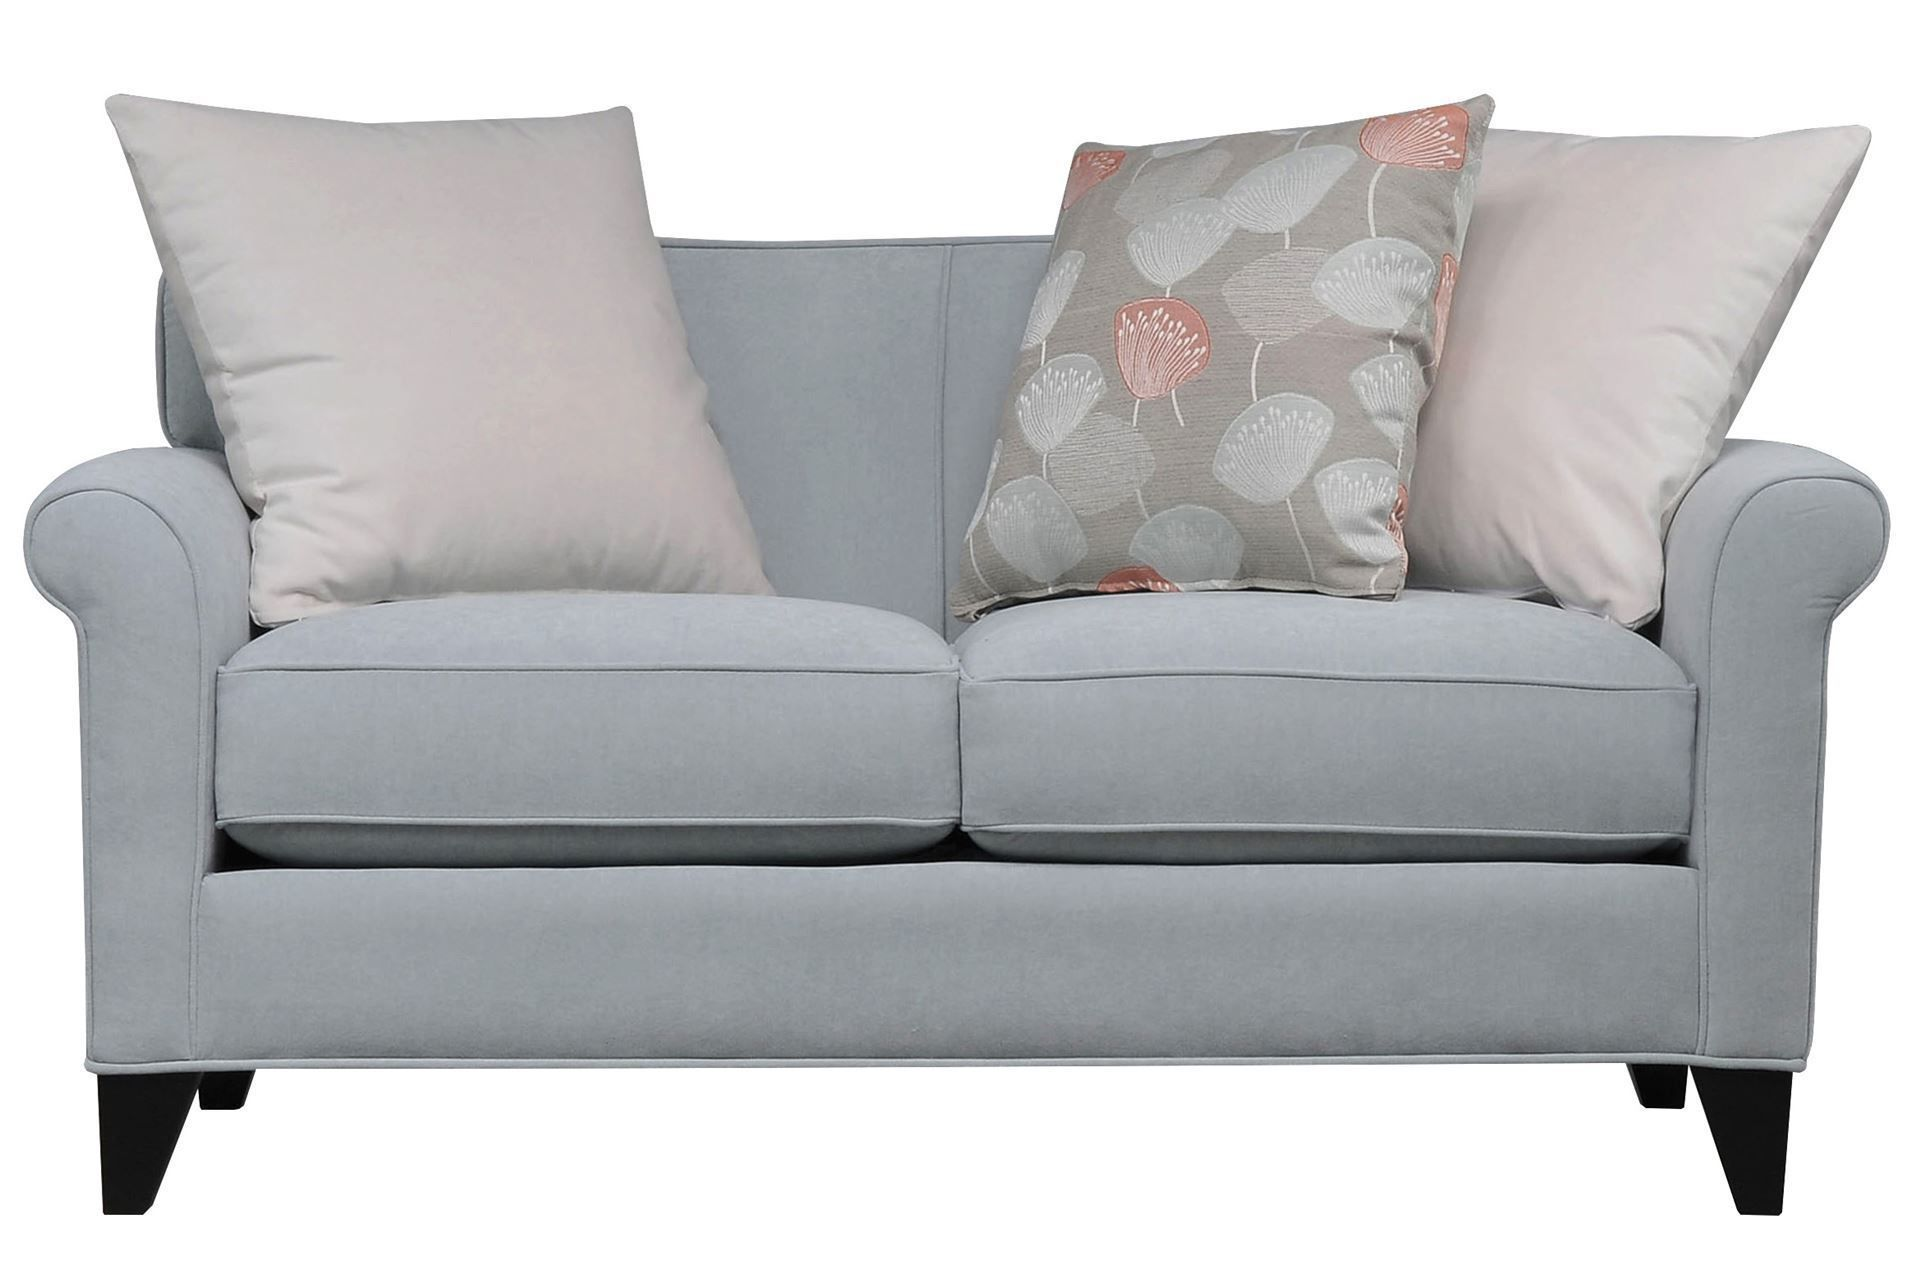 Gemma loveseat upholstery pillows and living spaces